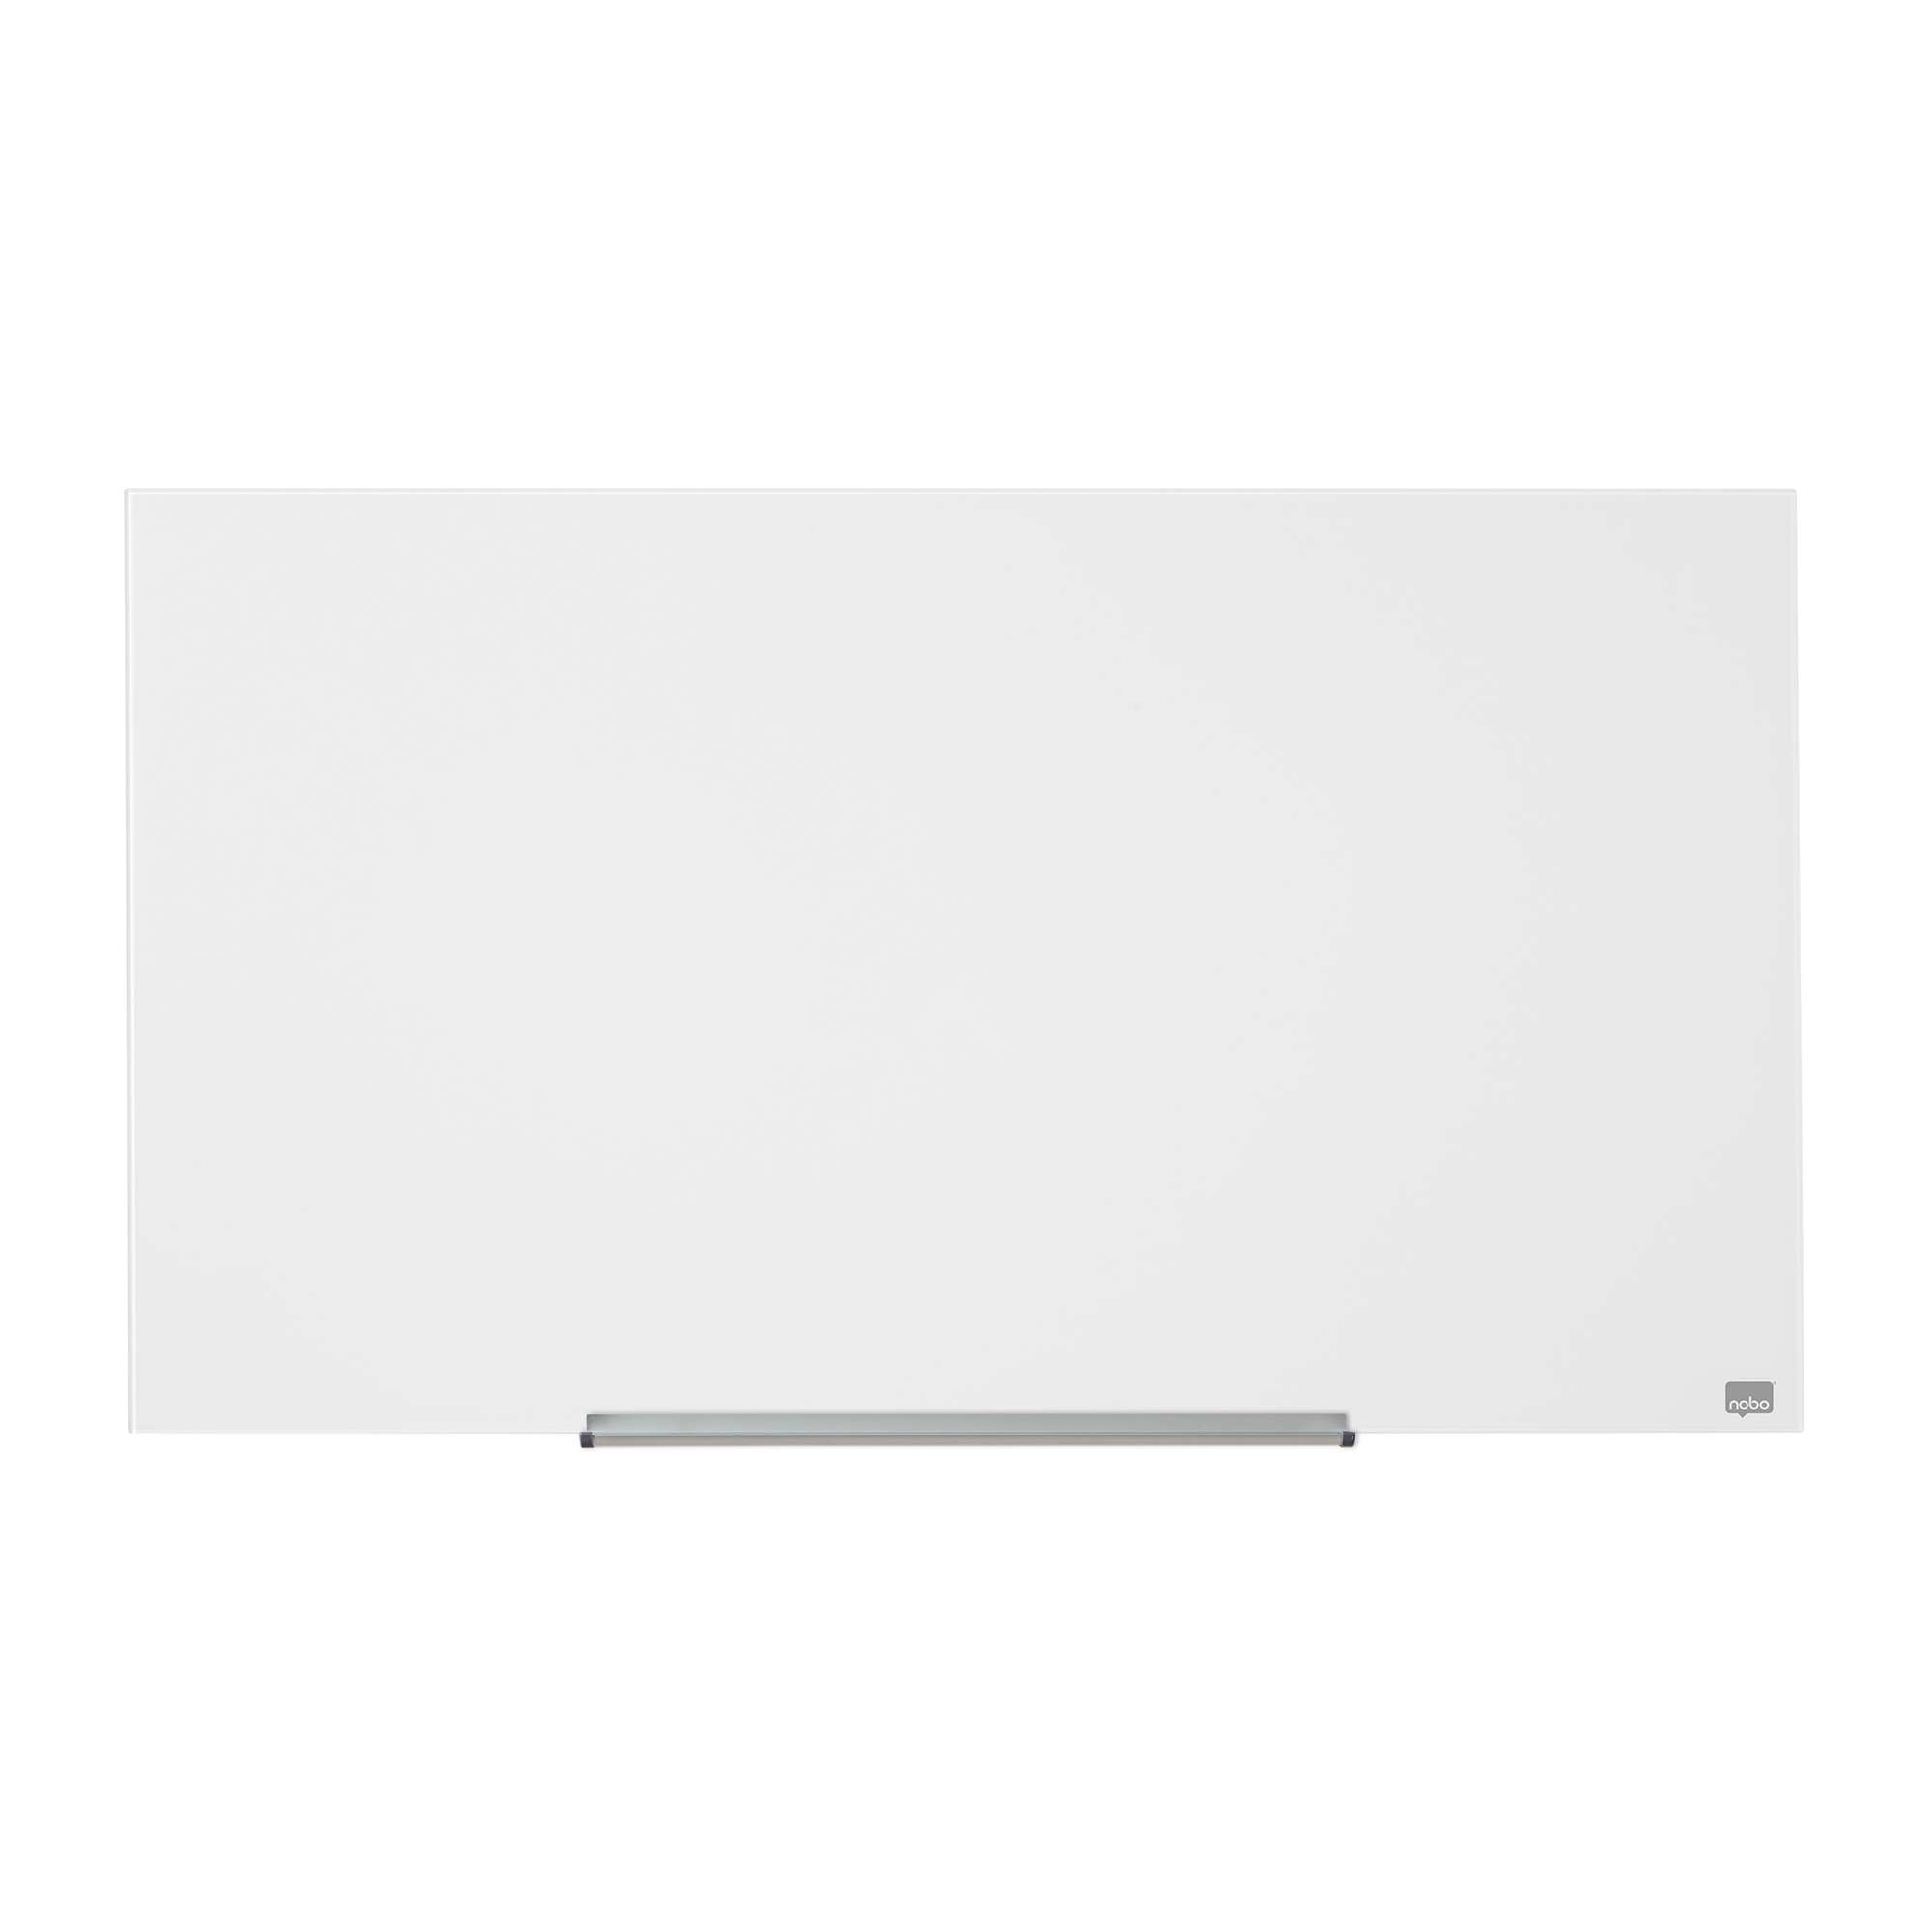 Magnetic Nobo Widescreen 57 inch WBrd Glass Magnetic Scratch-Resistant Fixings Inc W1260xH710mm Wht Ref 1905177